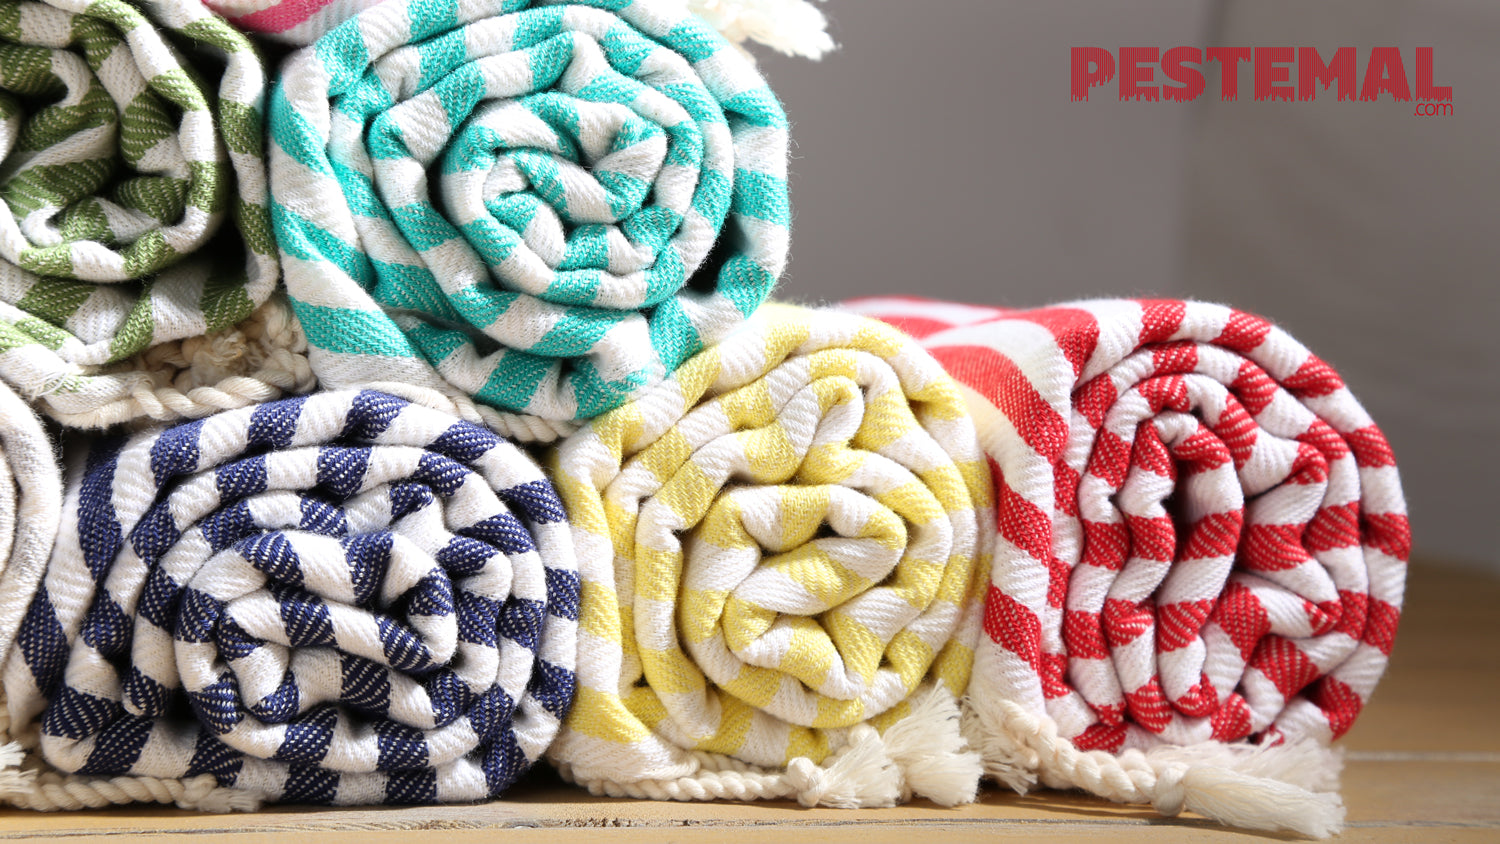 What are the advantages of owning a Pestemal towel?